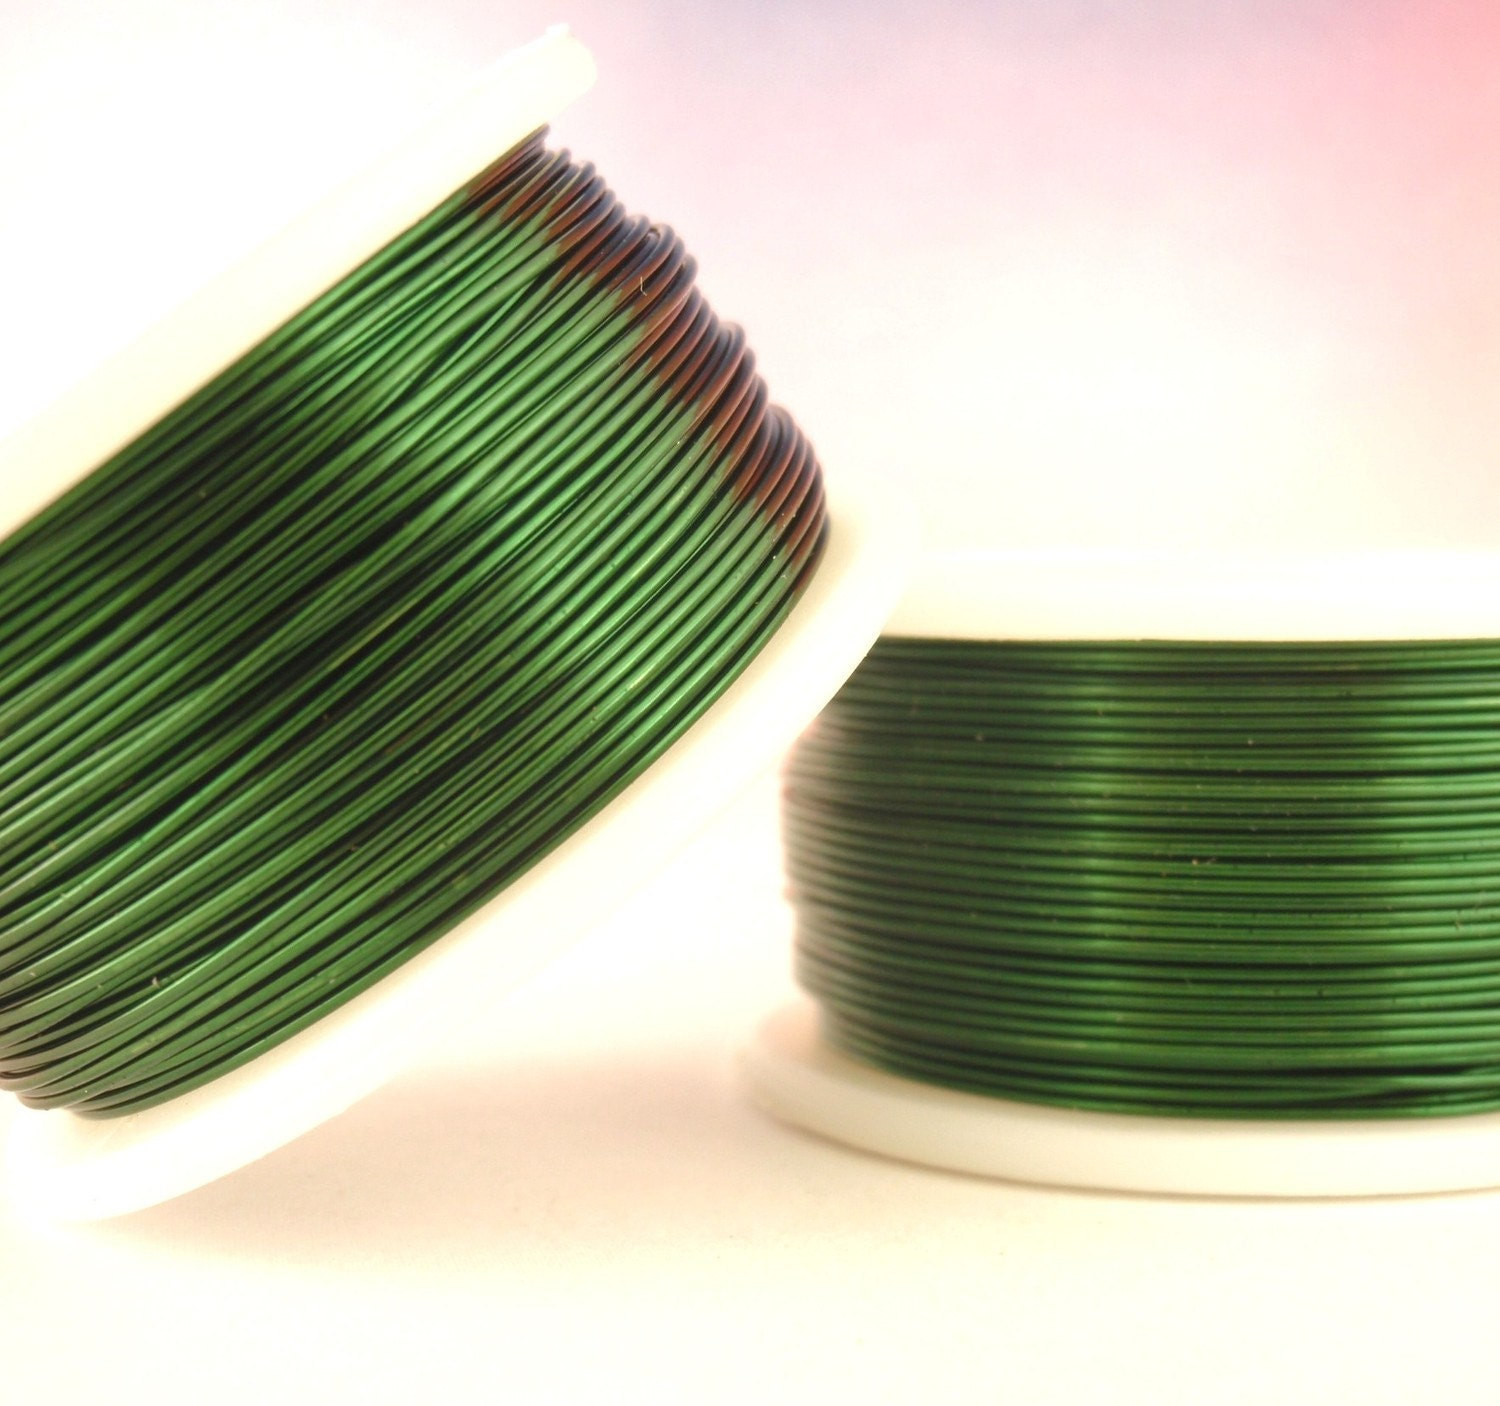 Coated Copper Wire   Green Enameled Coated Copper Wire 100 Guarantee You Pick Etsy